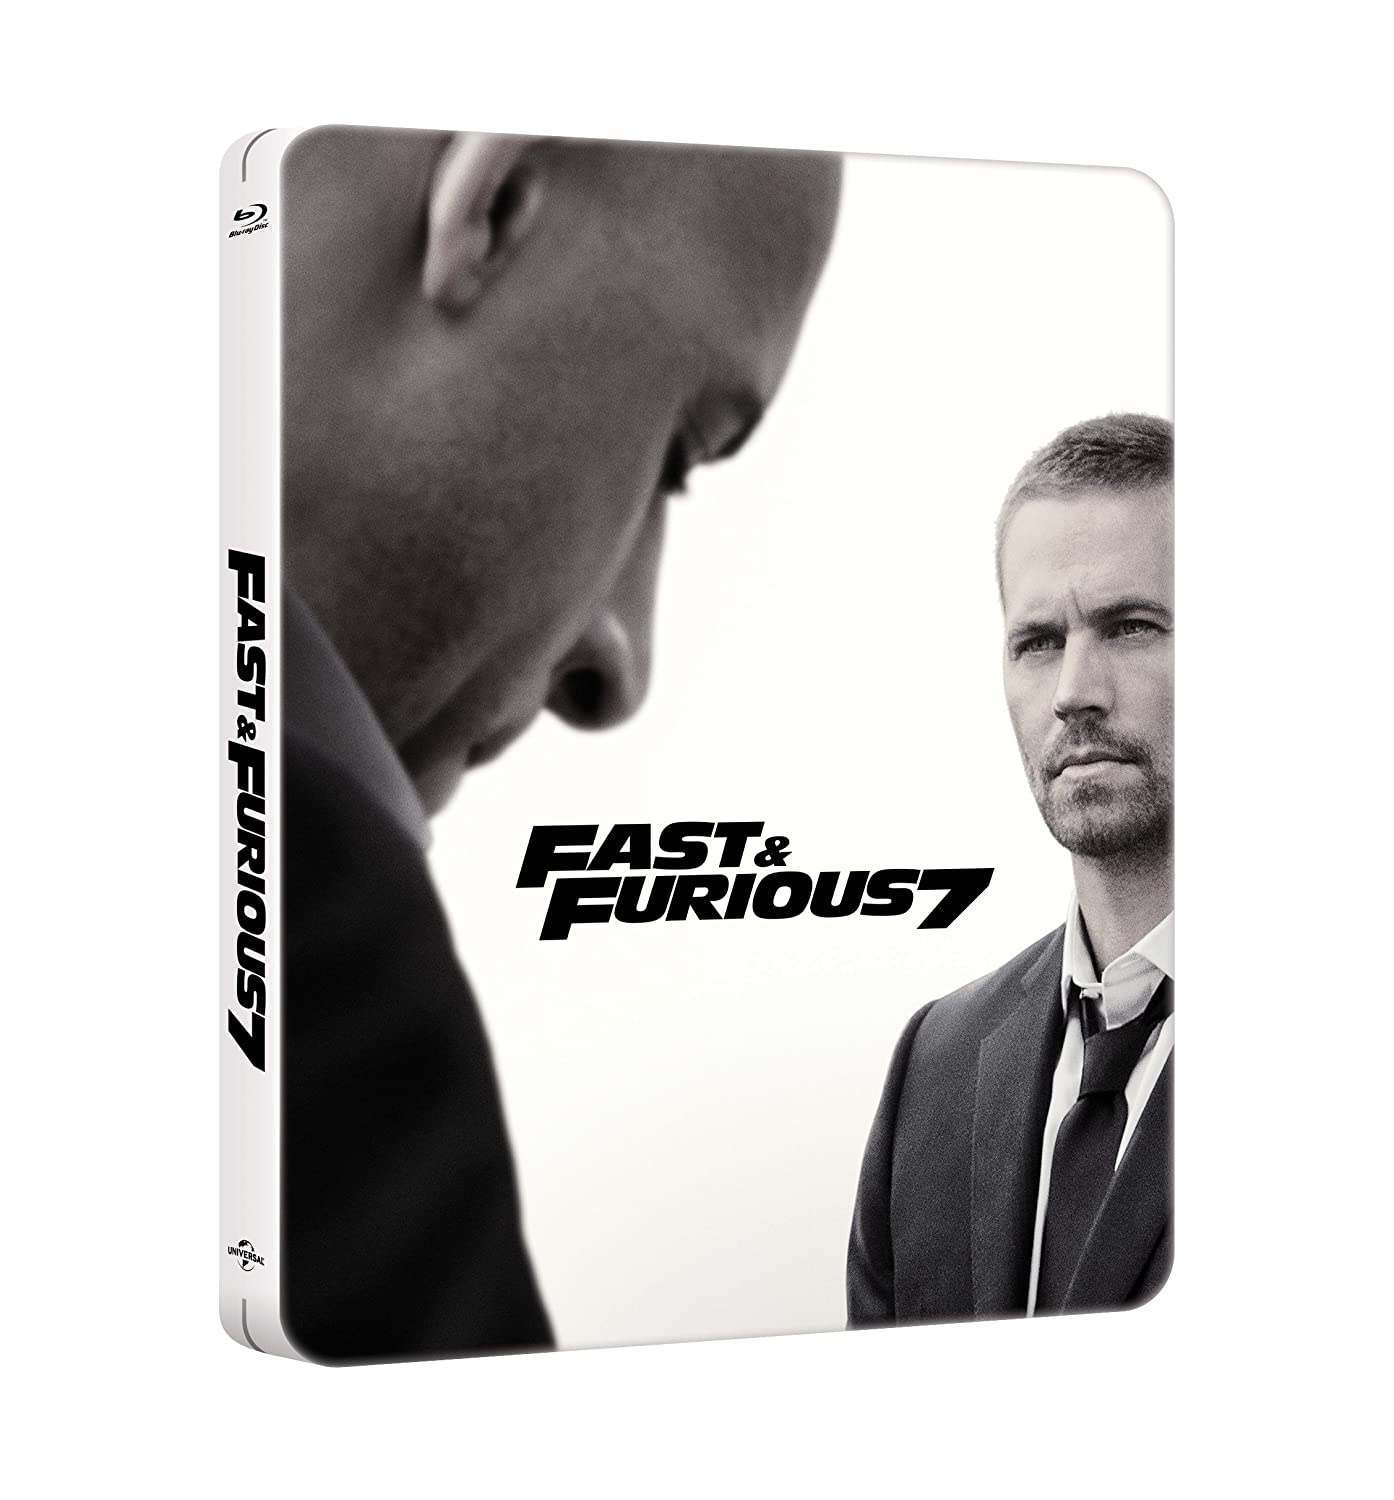 Amazon Com Steelbook Fast And Furious 7 Edition Limitee Exclusive Movies Tv